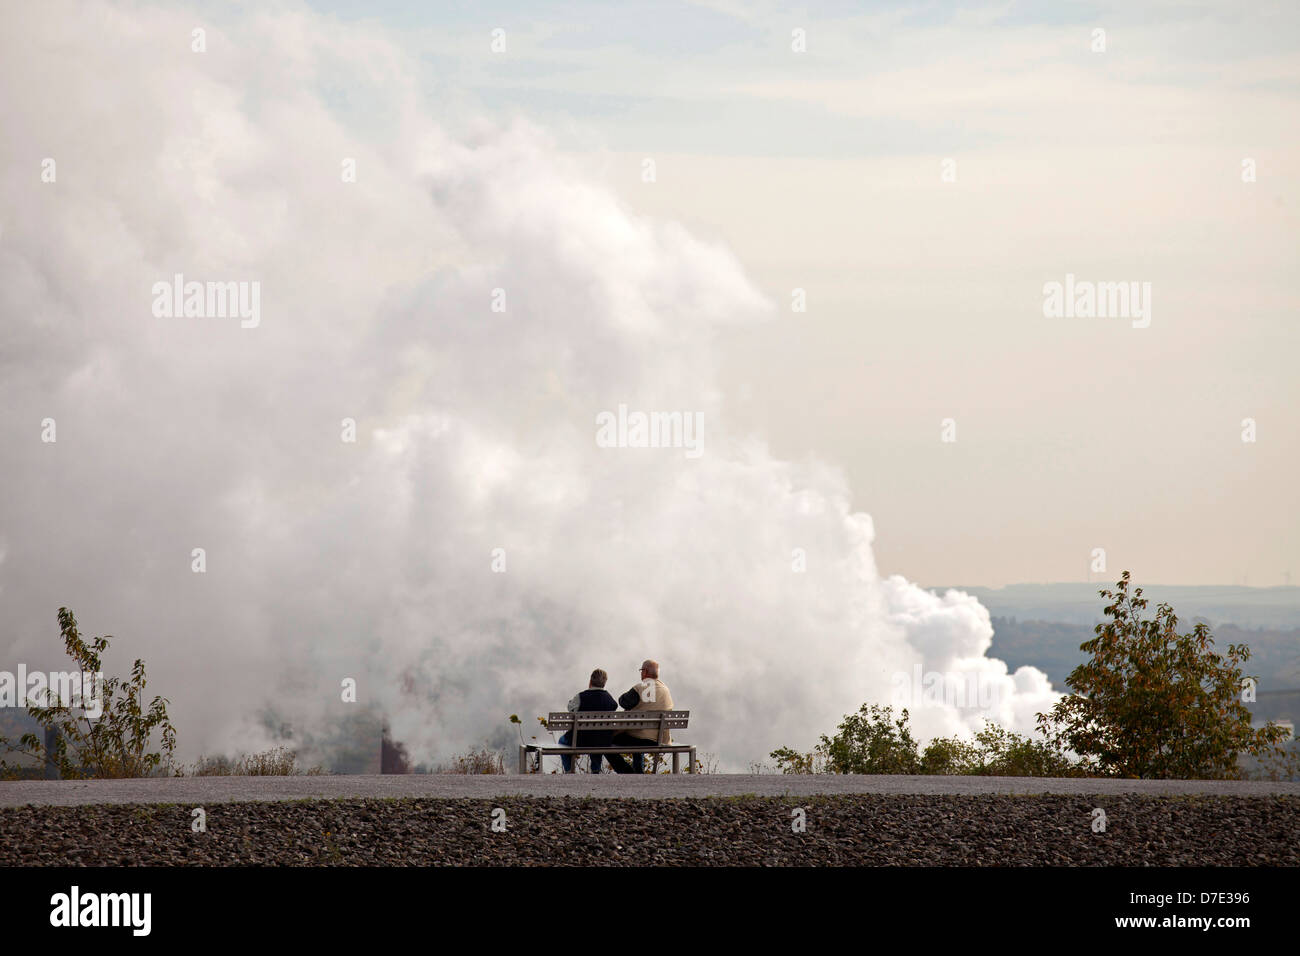 Couple on a bench in front of air pollution from a power plant in Bottrop, Ruhr Area, North Rhine-Westphalia, Germany, - Stock Image